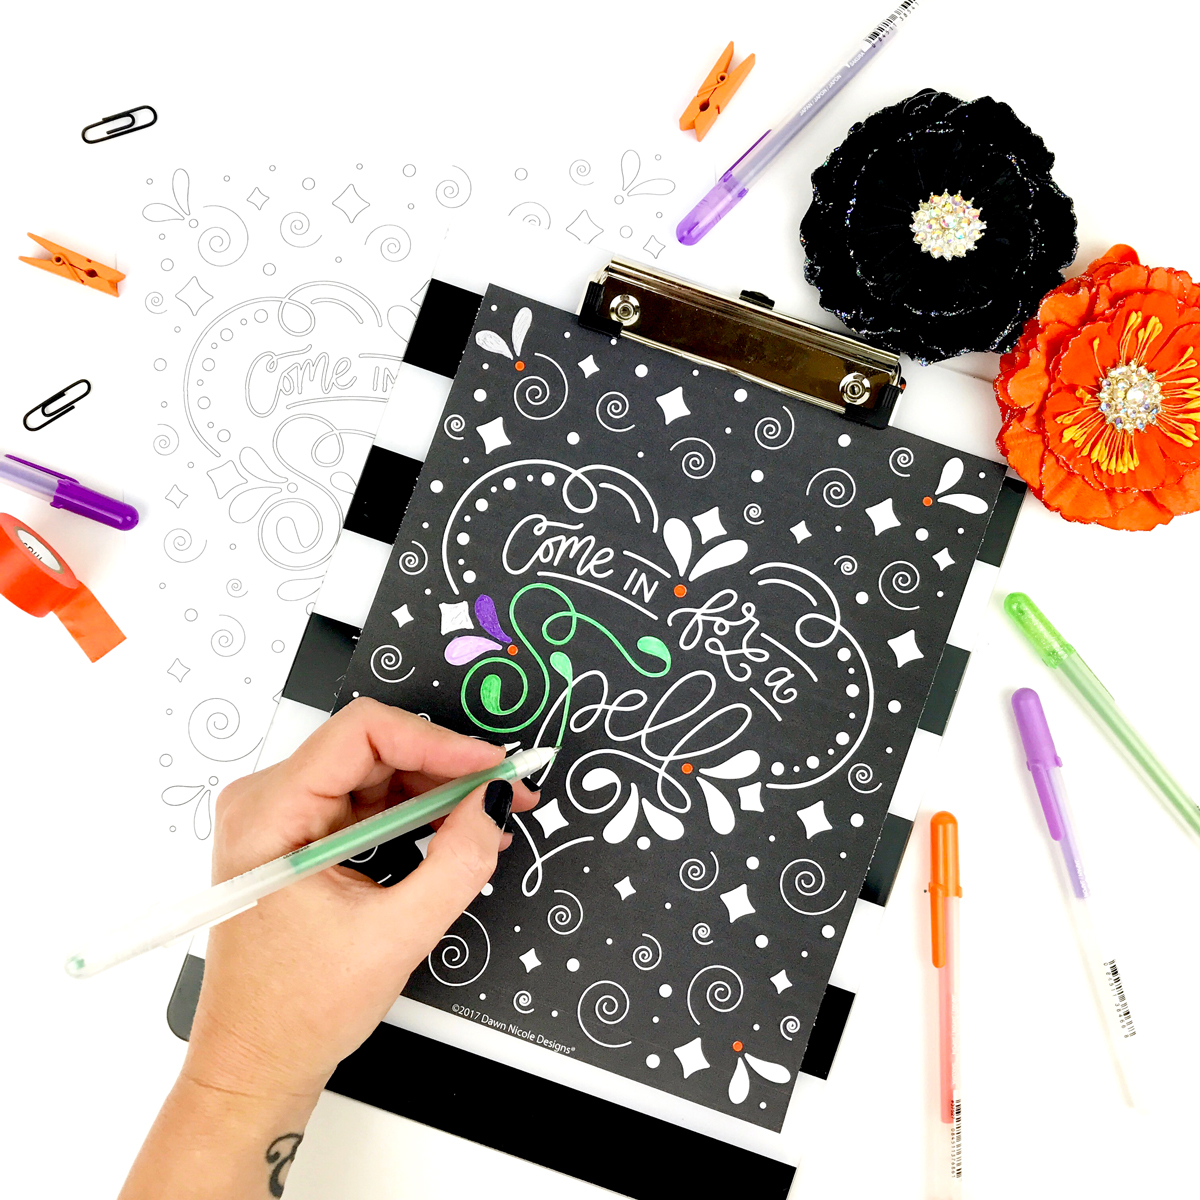 Come In For a Spell Coloring Page - Free Halloween Coloring Page